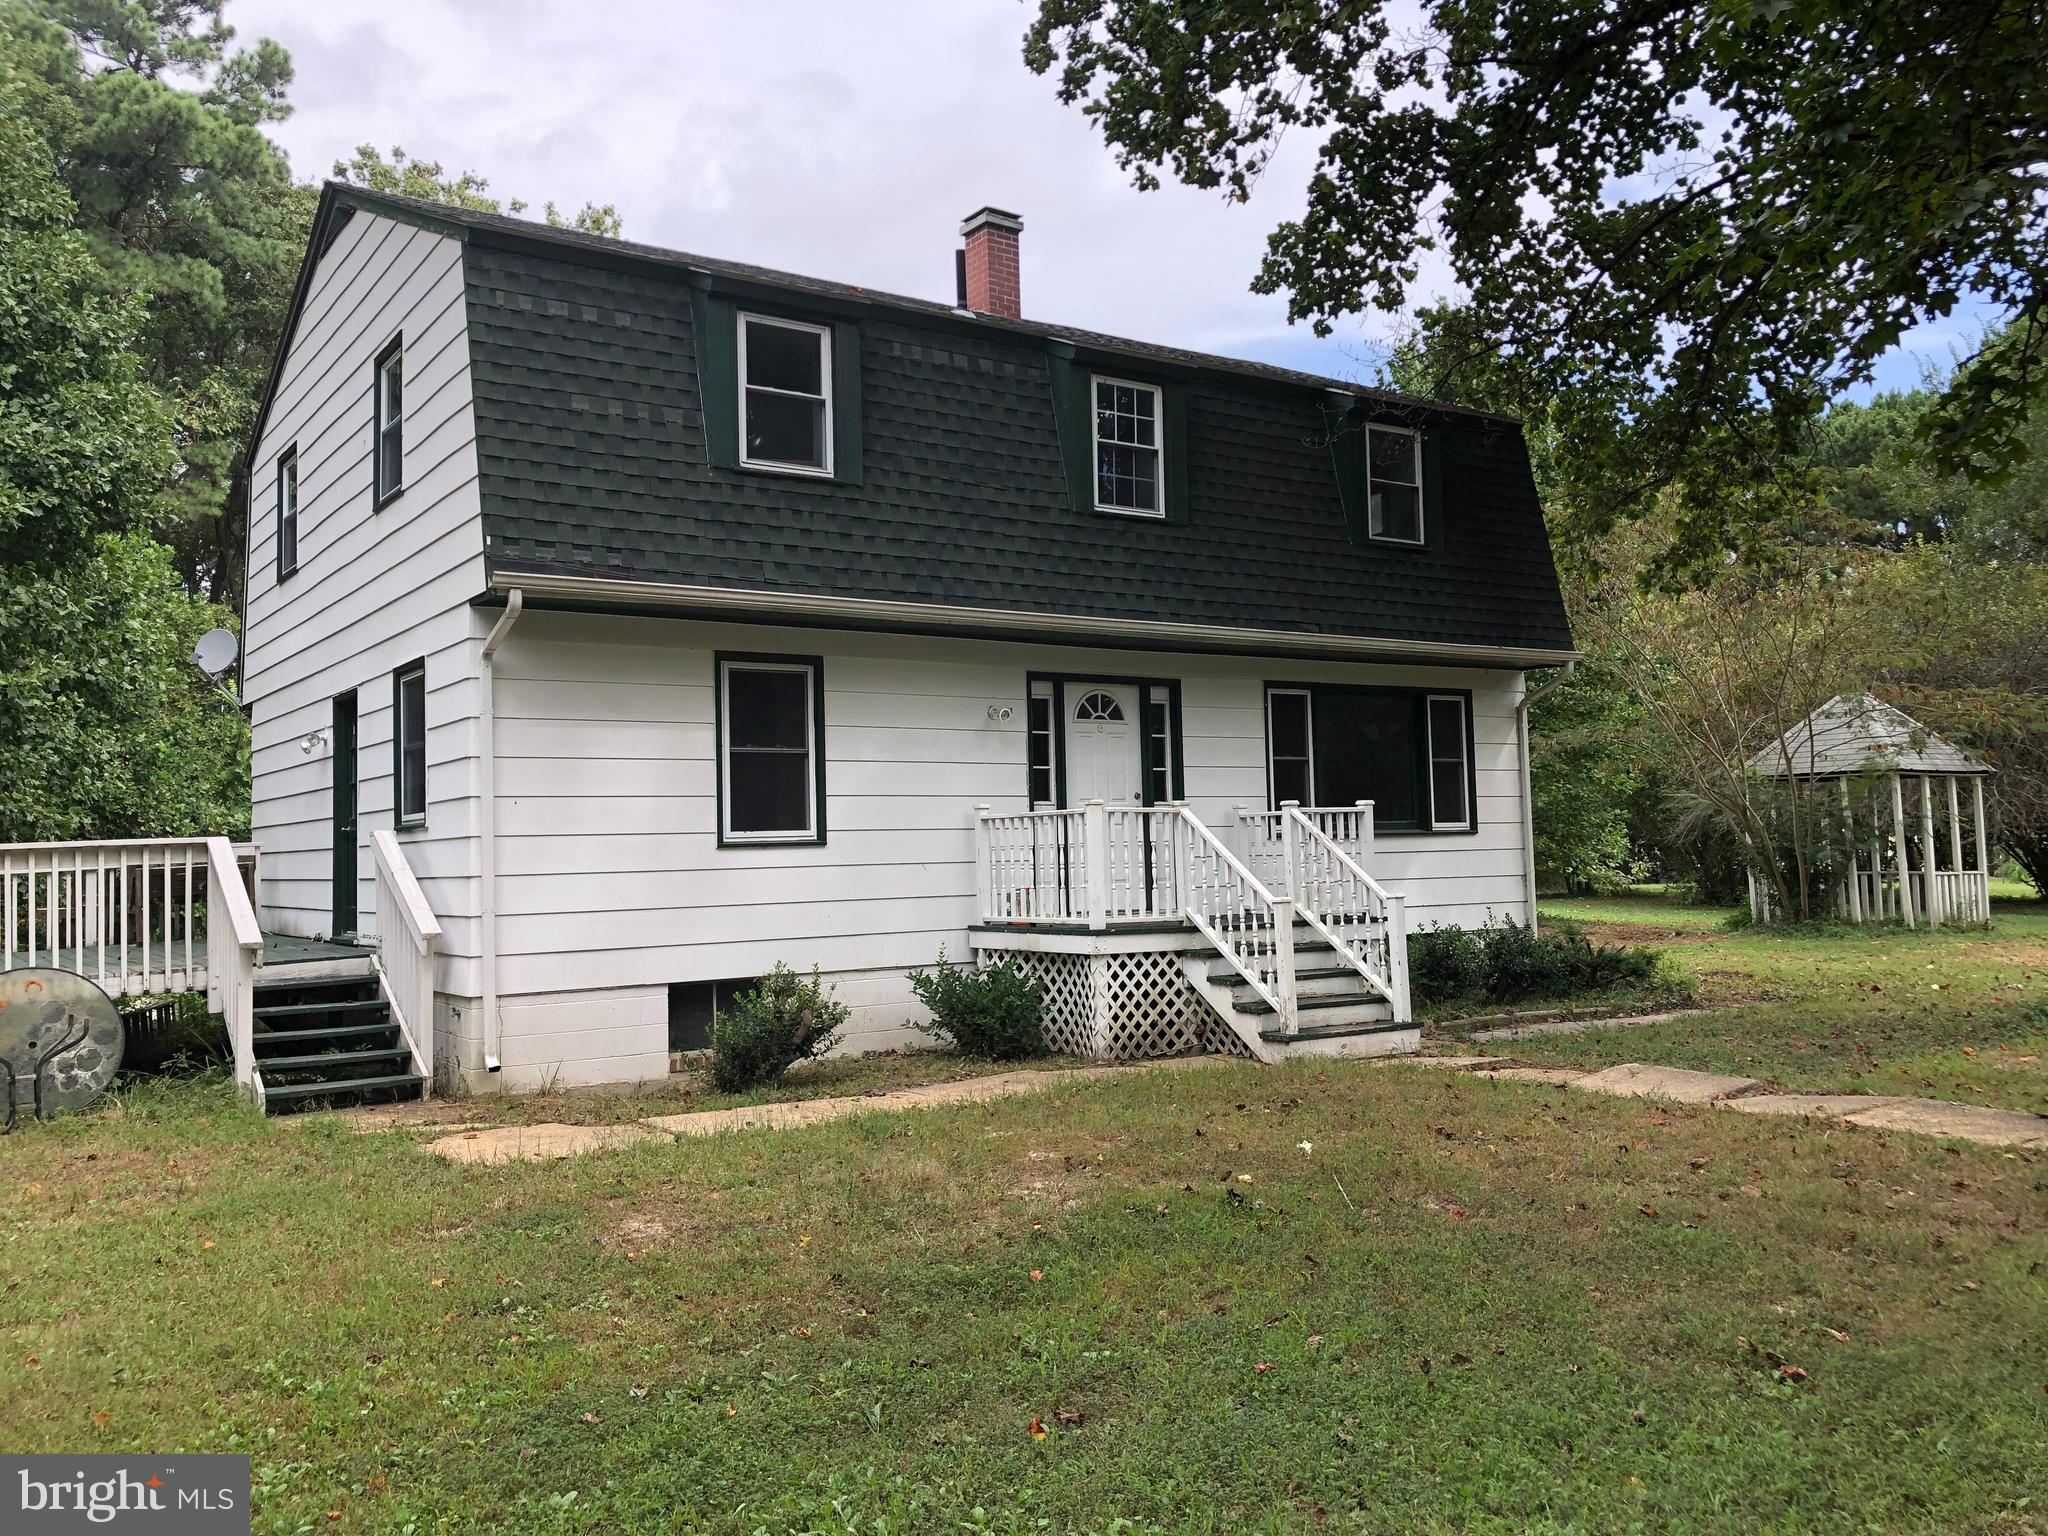 Nearly 7.5 acres with a park like setting.  Older 4 bedroom, 2 1/2 bathroom  home in need of repairs